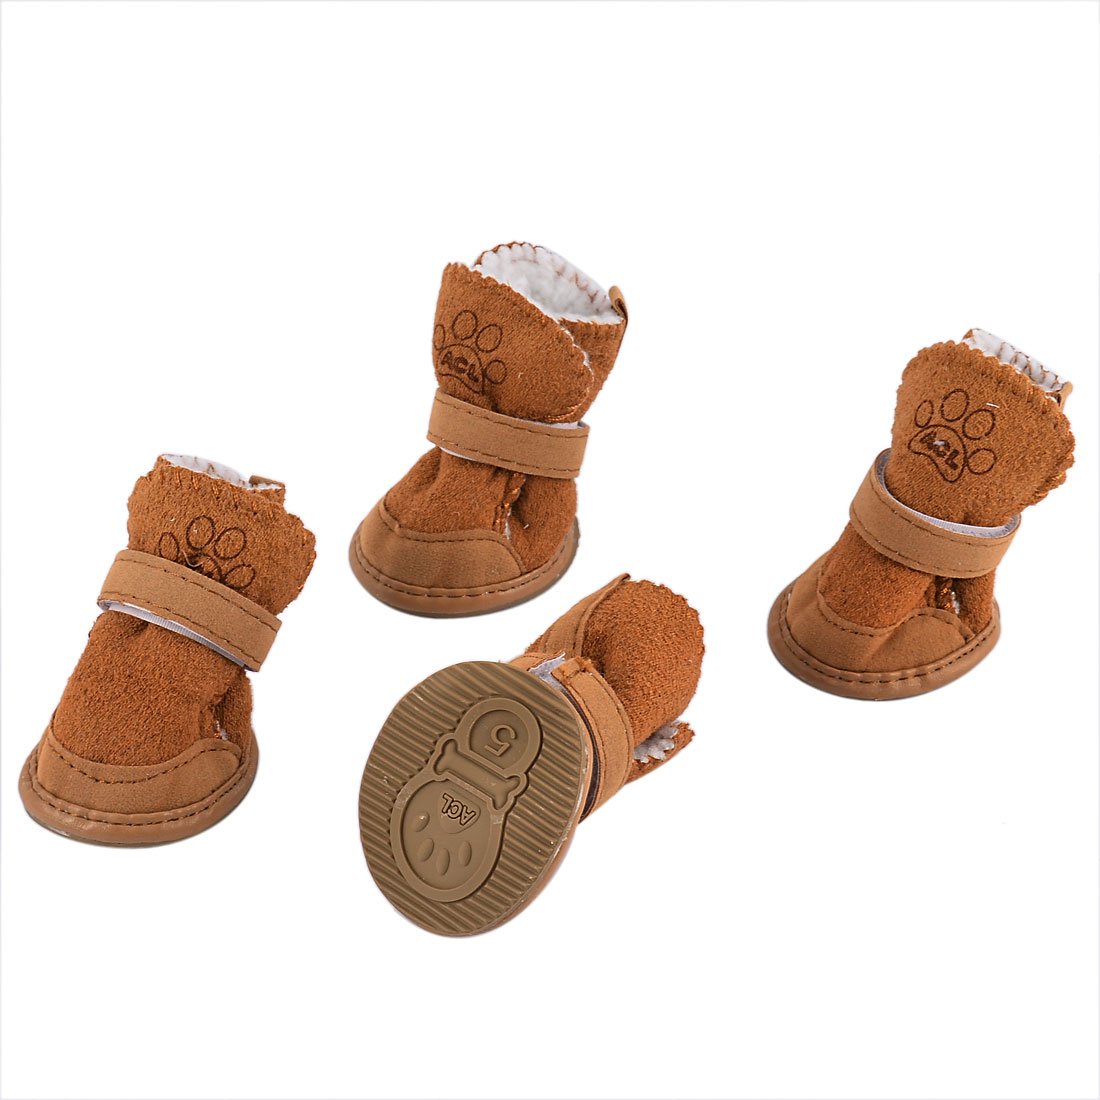 Pet Dog Chihuahua Hook Loop Closure Booties Shoes Boots 2 Pair Brown Size XS